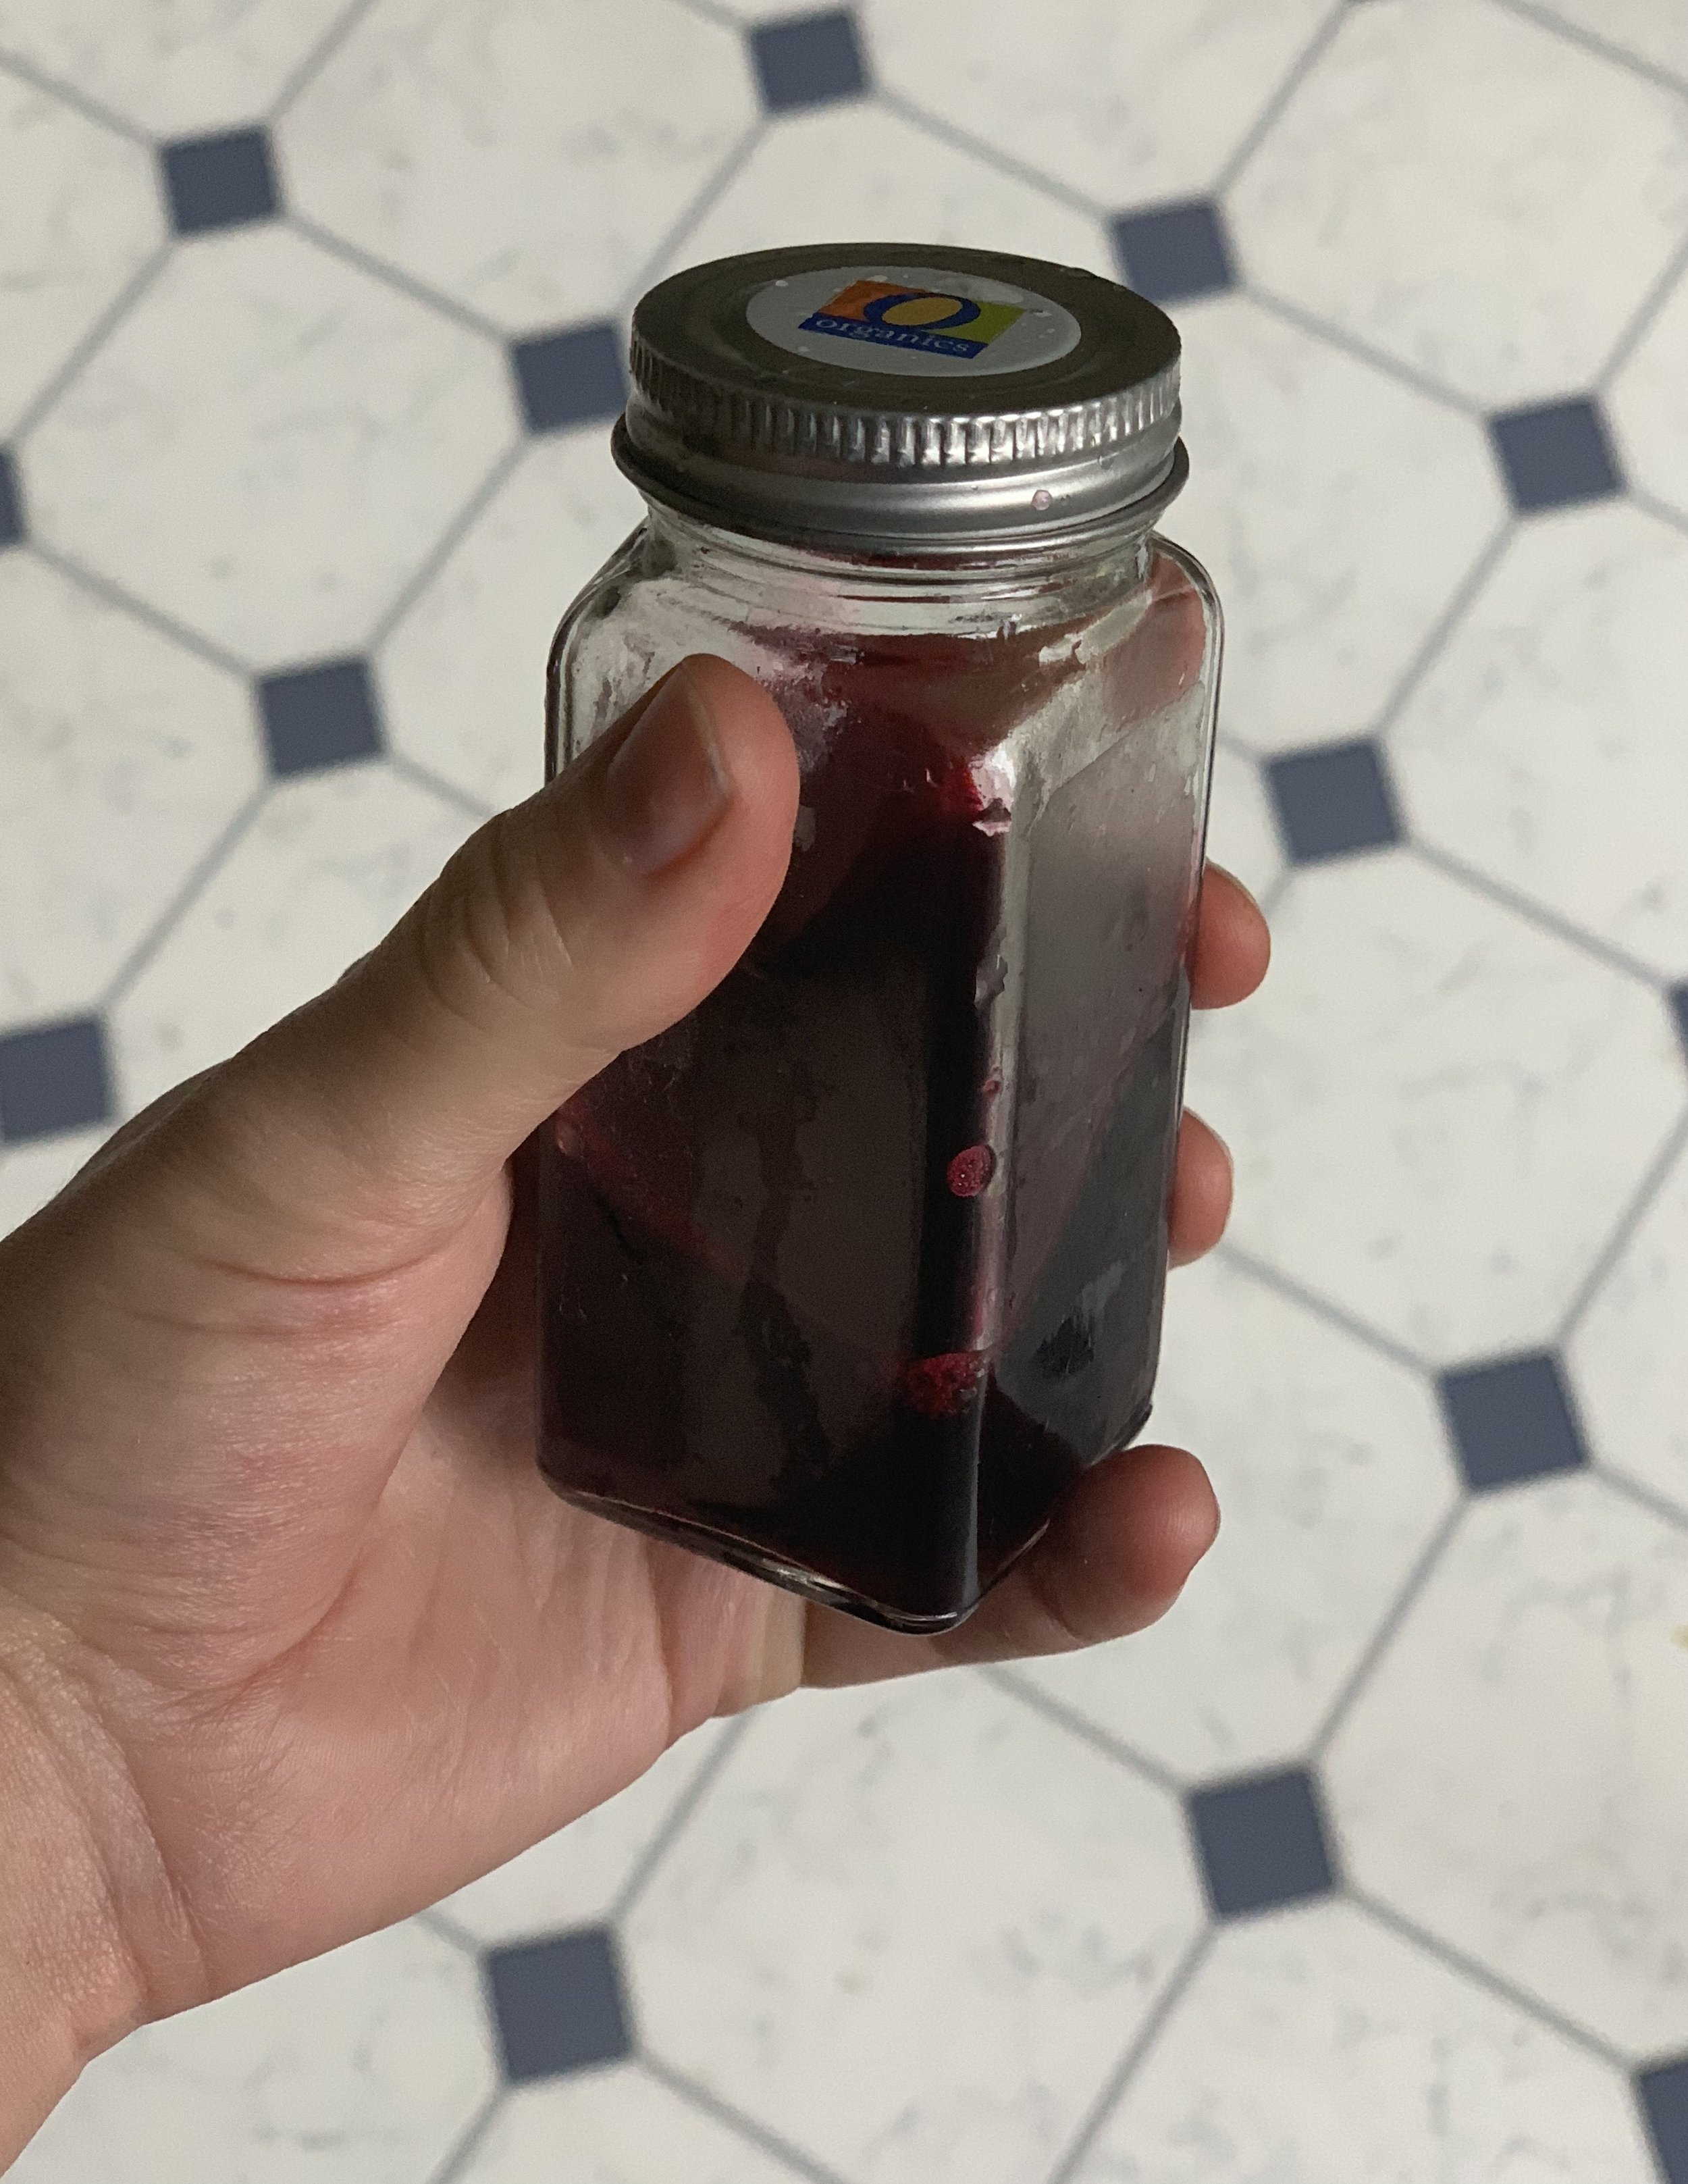 Stir well and let cool  to preserve your ink you can freeze it or add a small amount of rubbing alcohol or salt